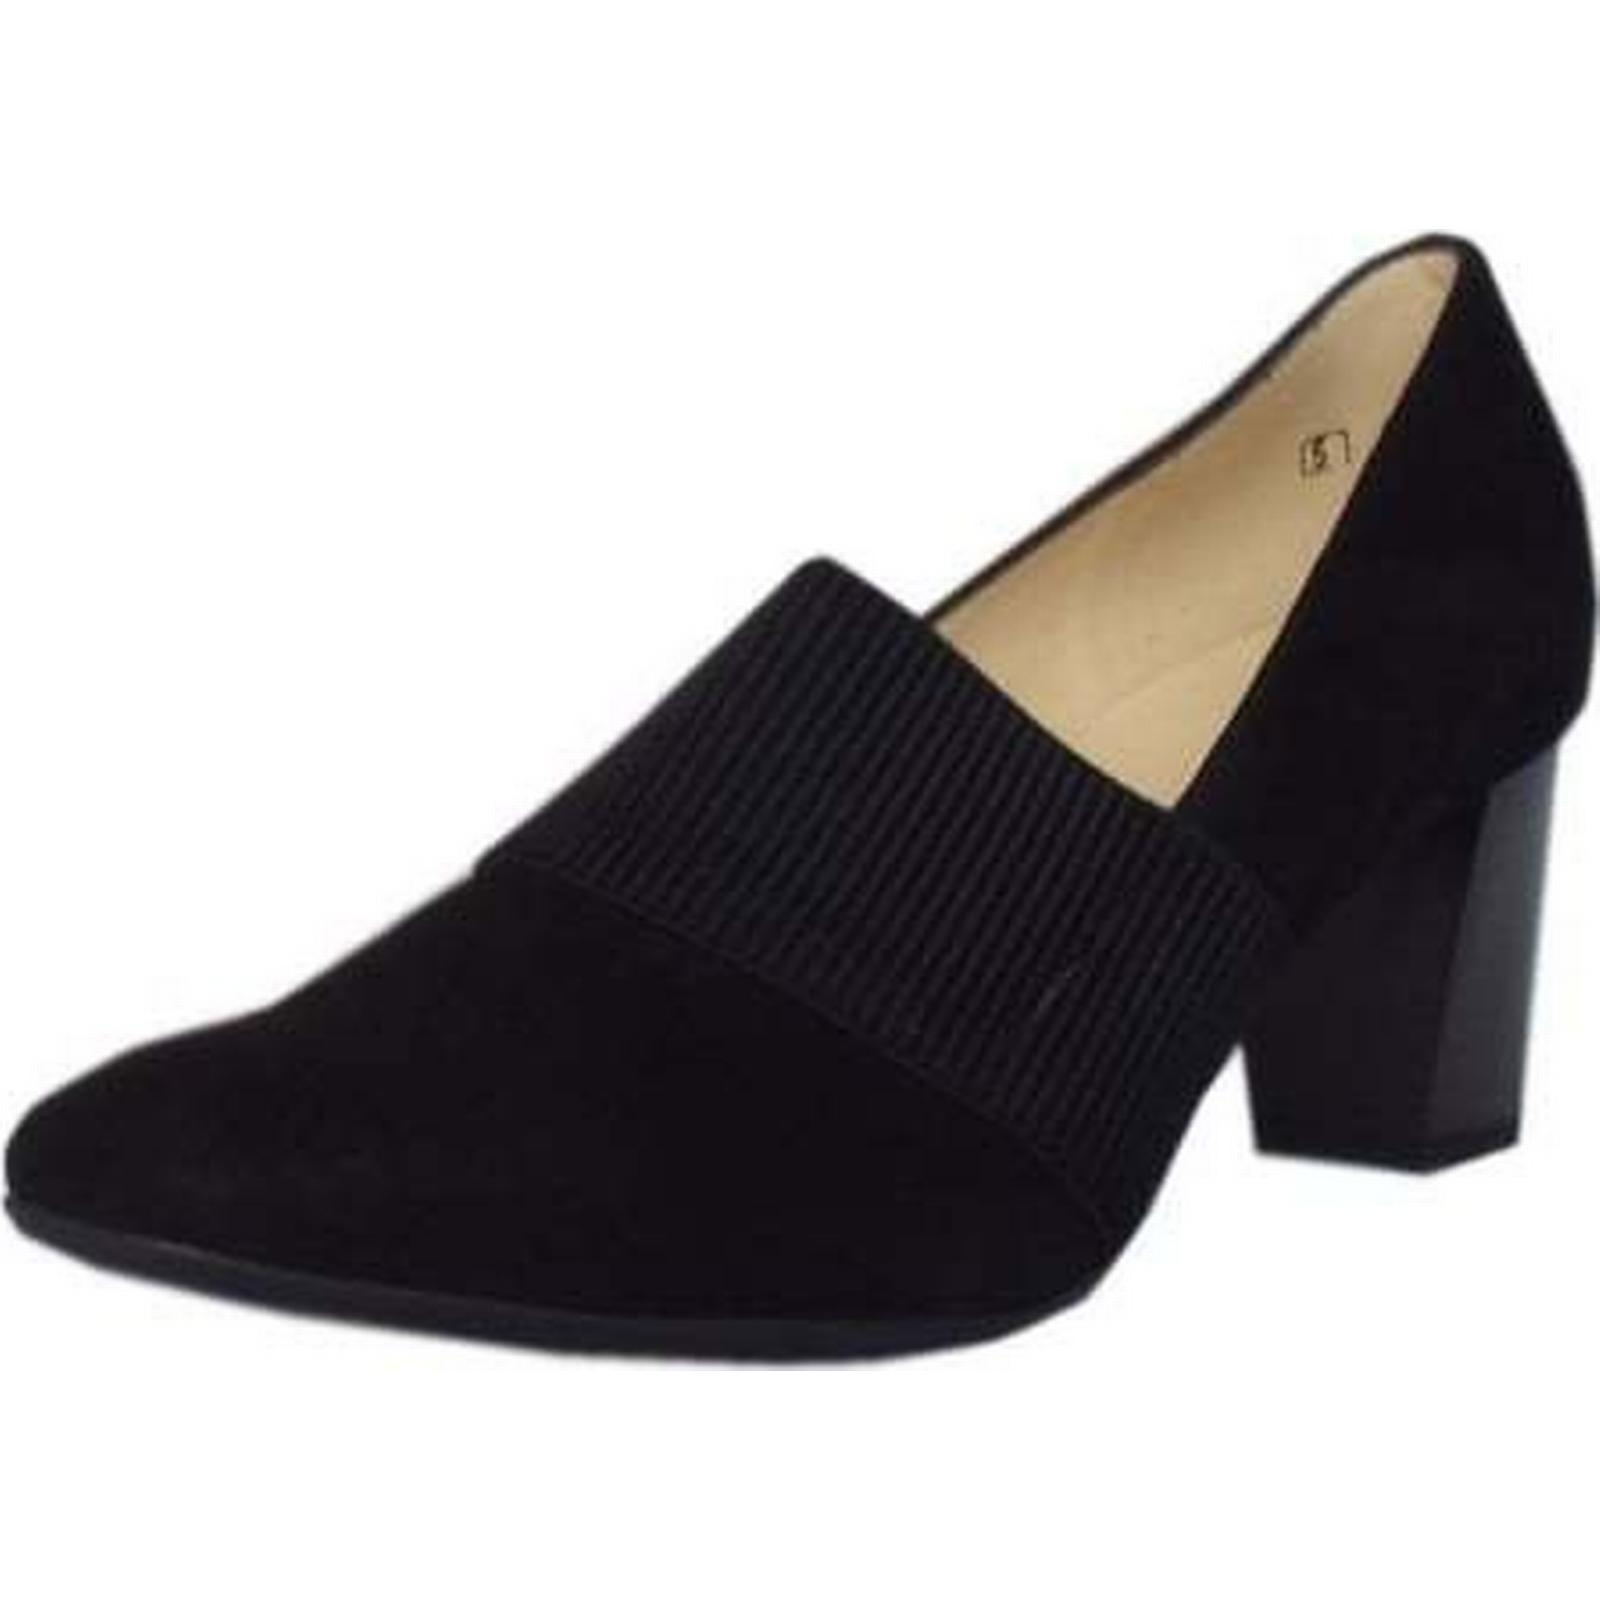 Peter Kaiser DORNA PETER KAISER LADIES SHOES Size: 4, 4, Size: Colour: BLACK SU 215347